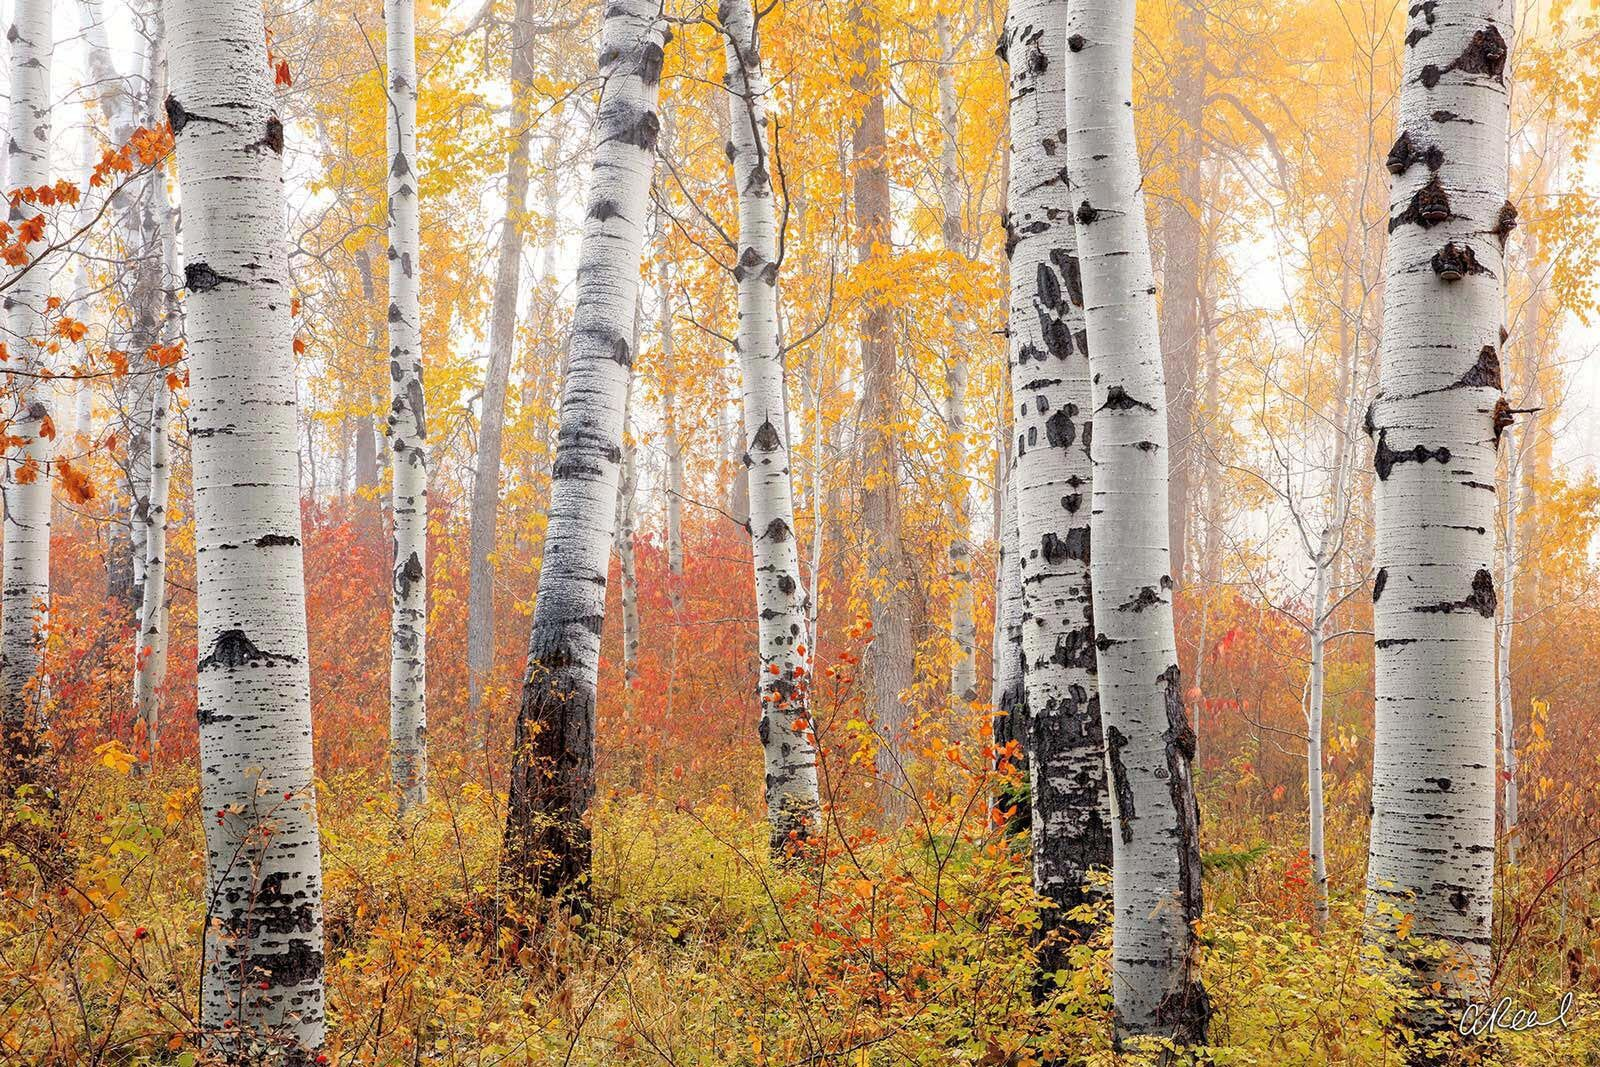 Firesticks | Sparsely Spaced Aspen Trees on a Foggy Morning With Yellow Leaves | Fine Art Photography for Sale by Aaron Reed